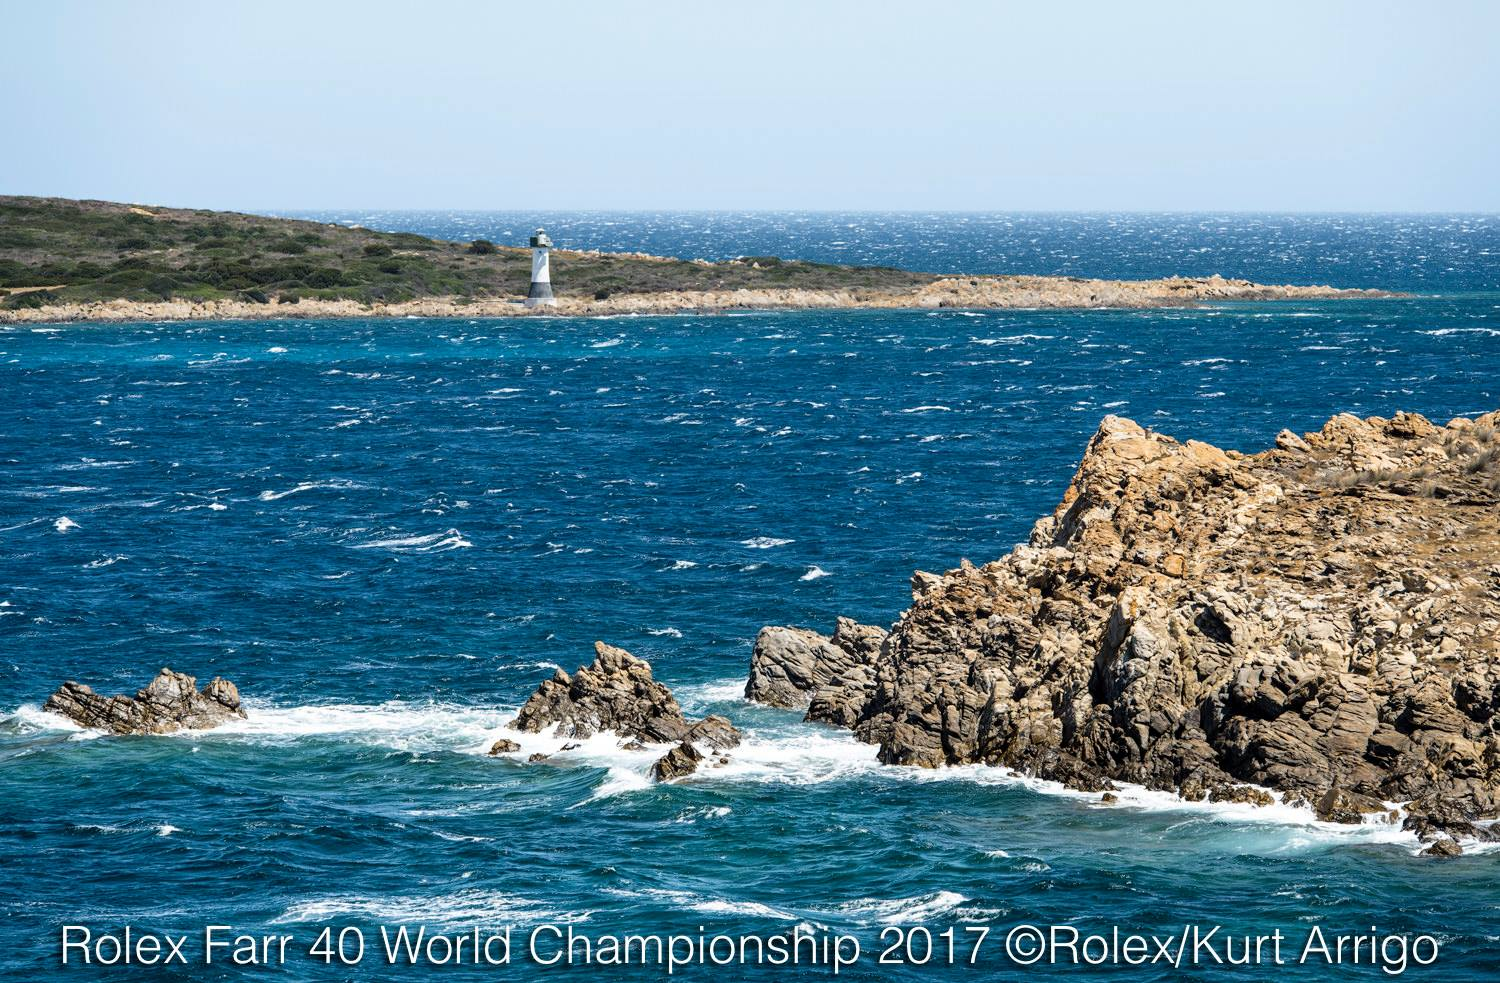 Rolex Farr 40 World Championship 2017 day 1 07